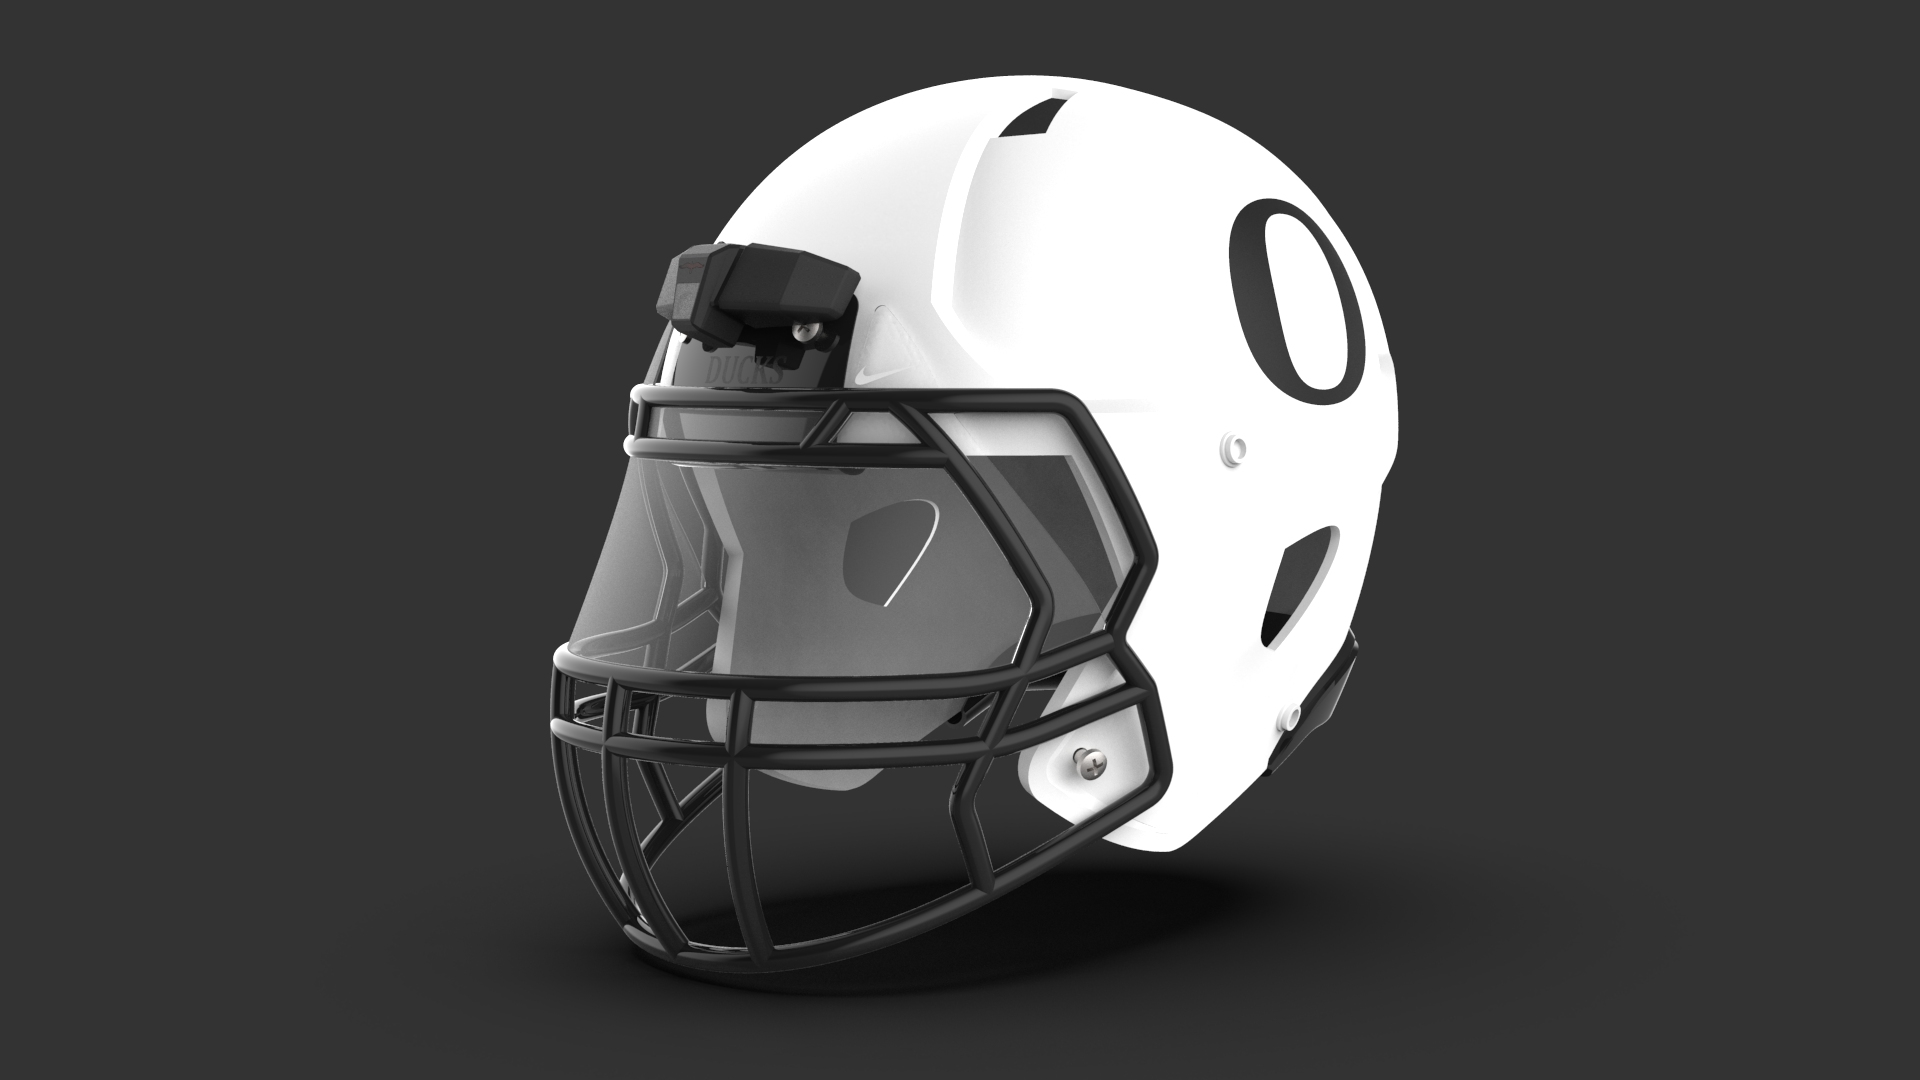 Helmet and sports product design